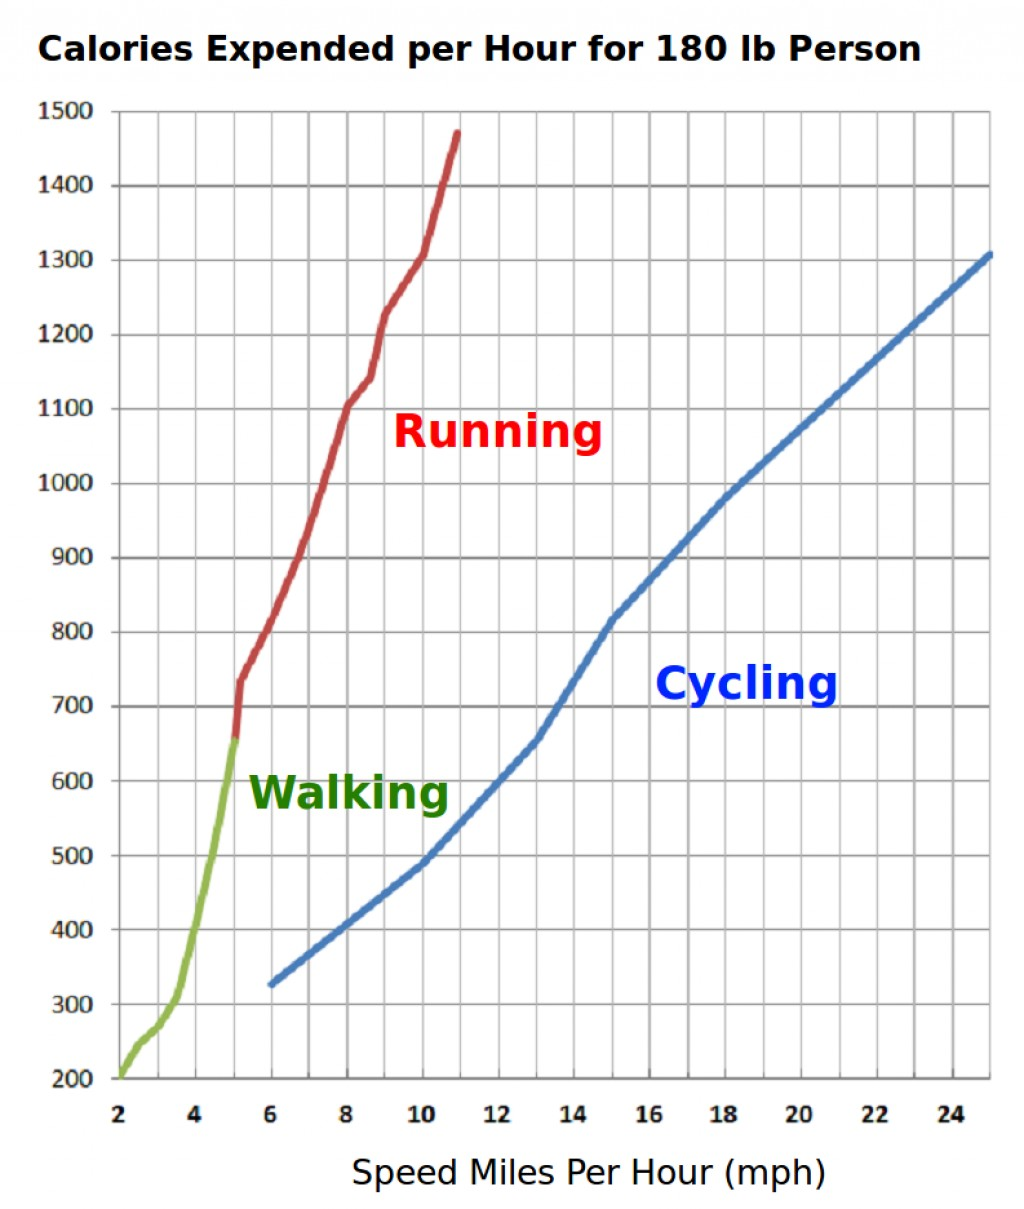 Rate of energy expenditure for various speeds for walking, running and cycling ( 180 lb person)